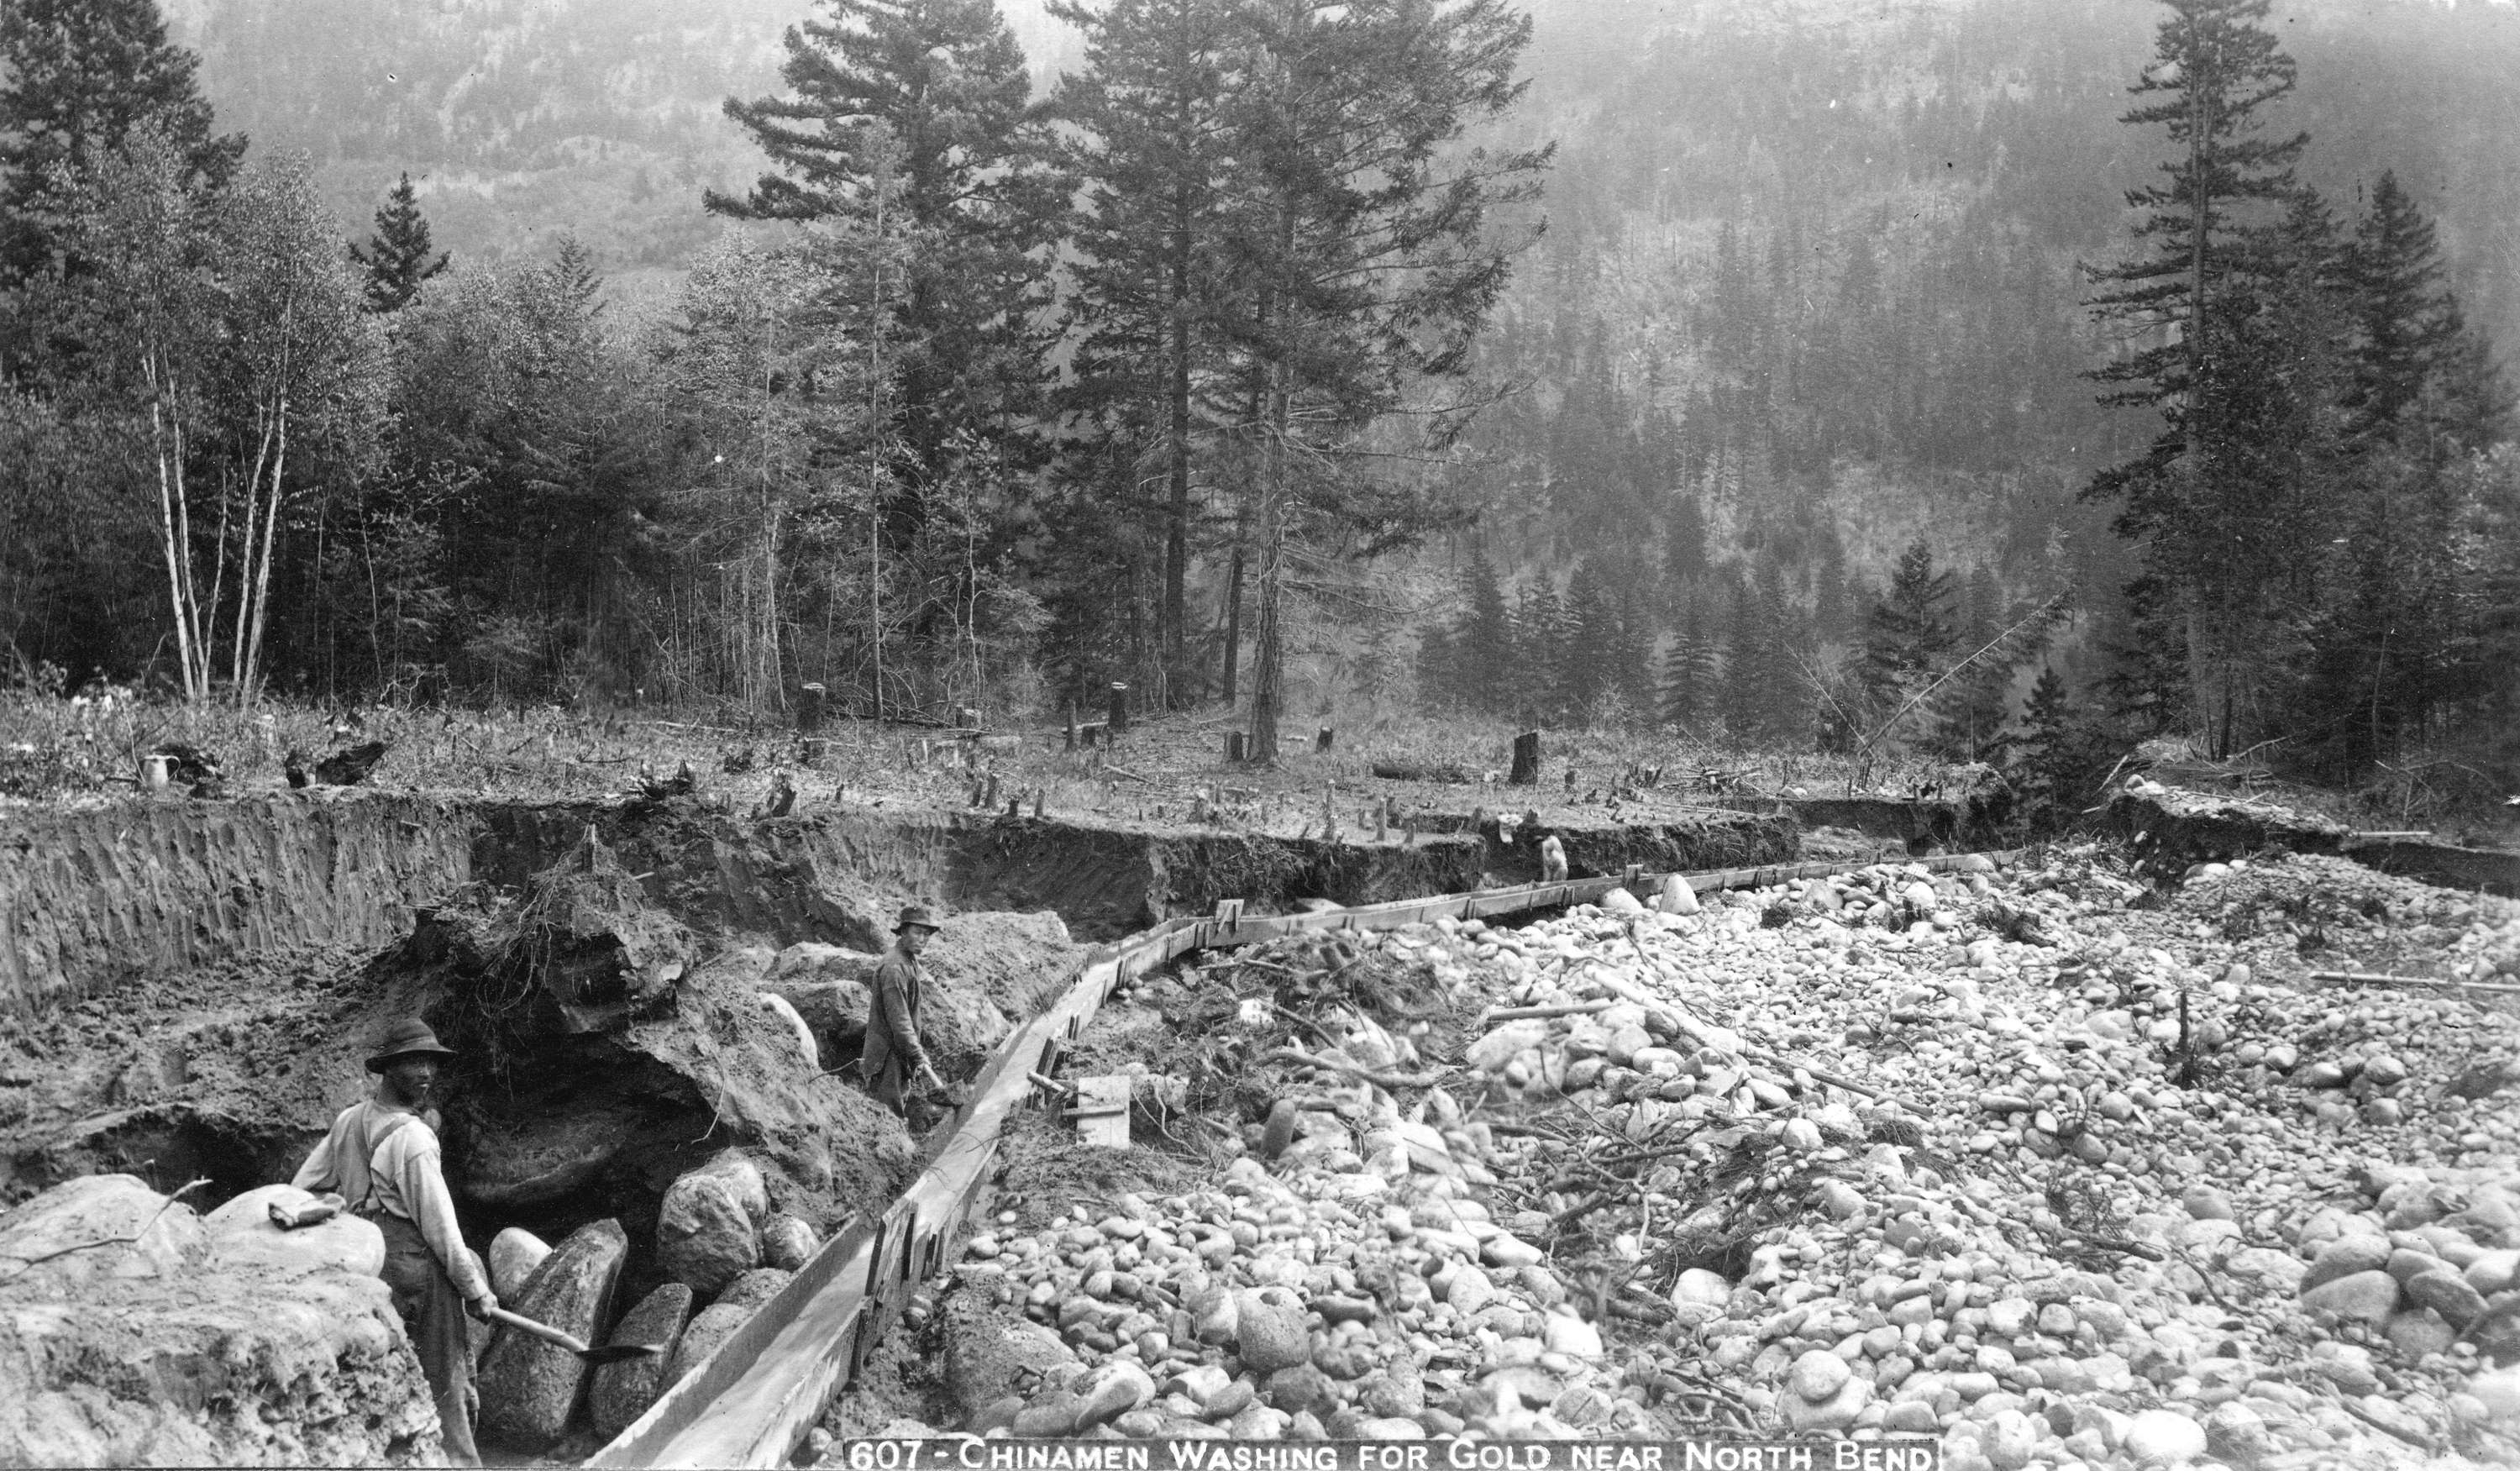 Chinese men mining for gold near North Bend in British Columbia, 1891.